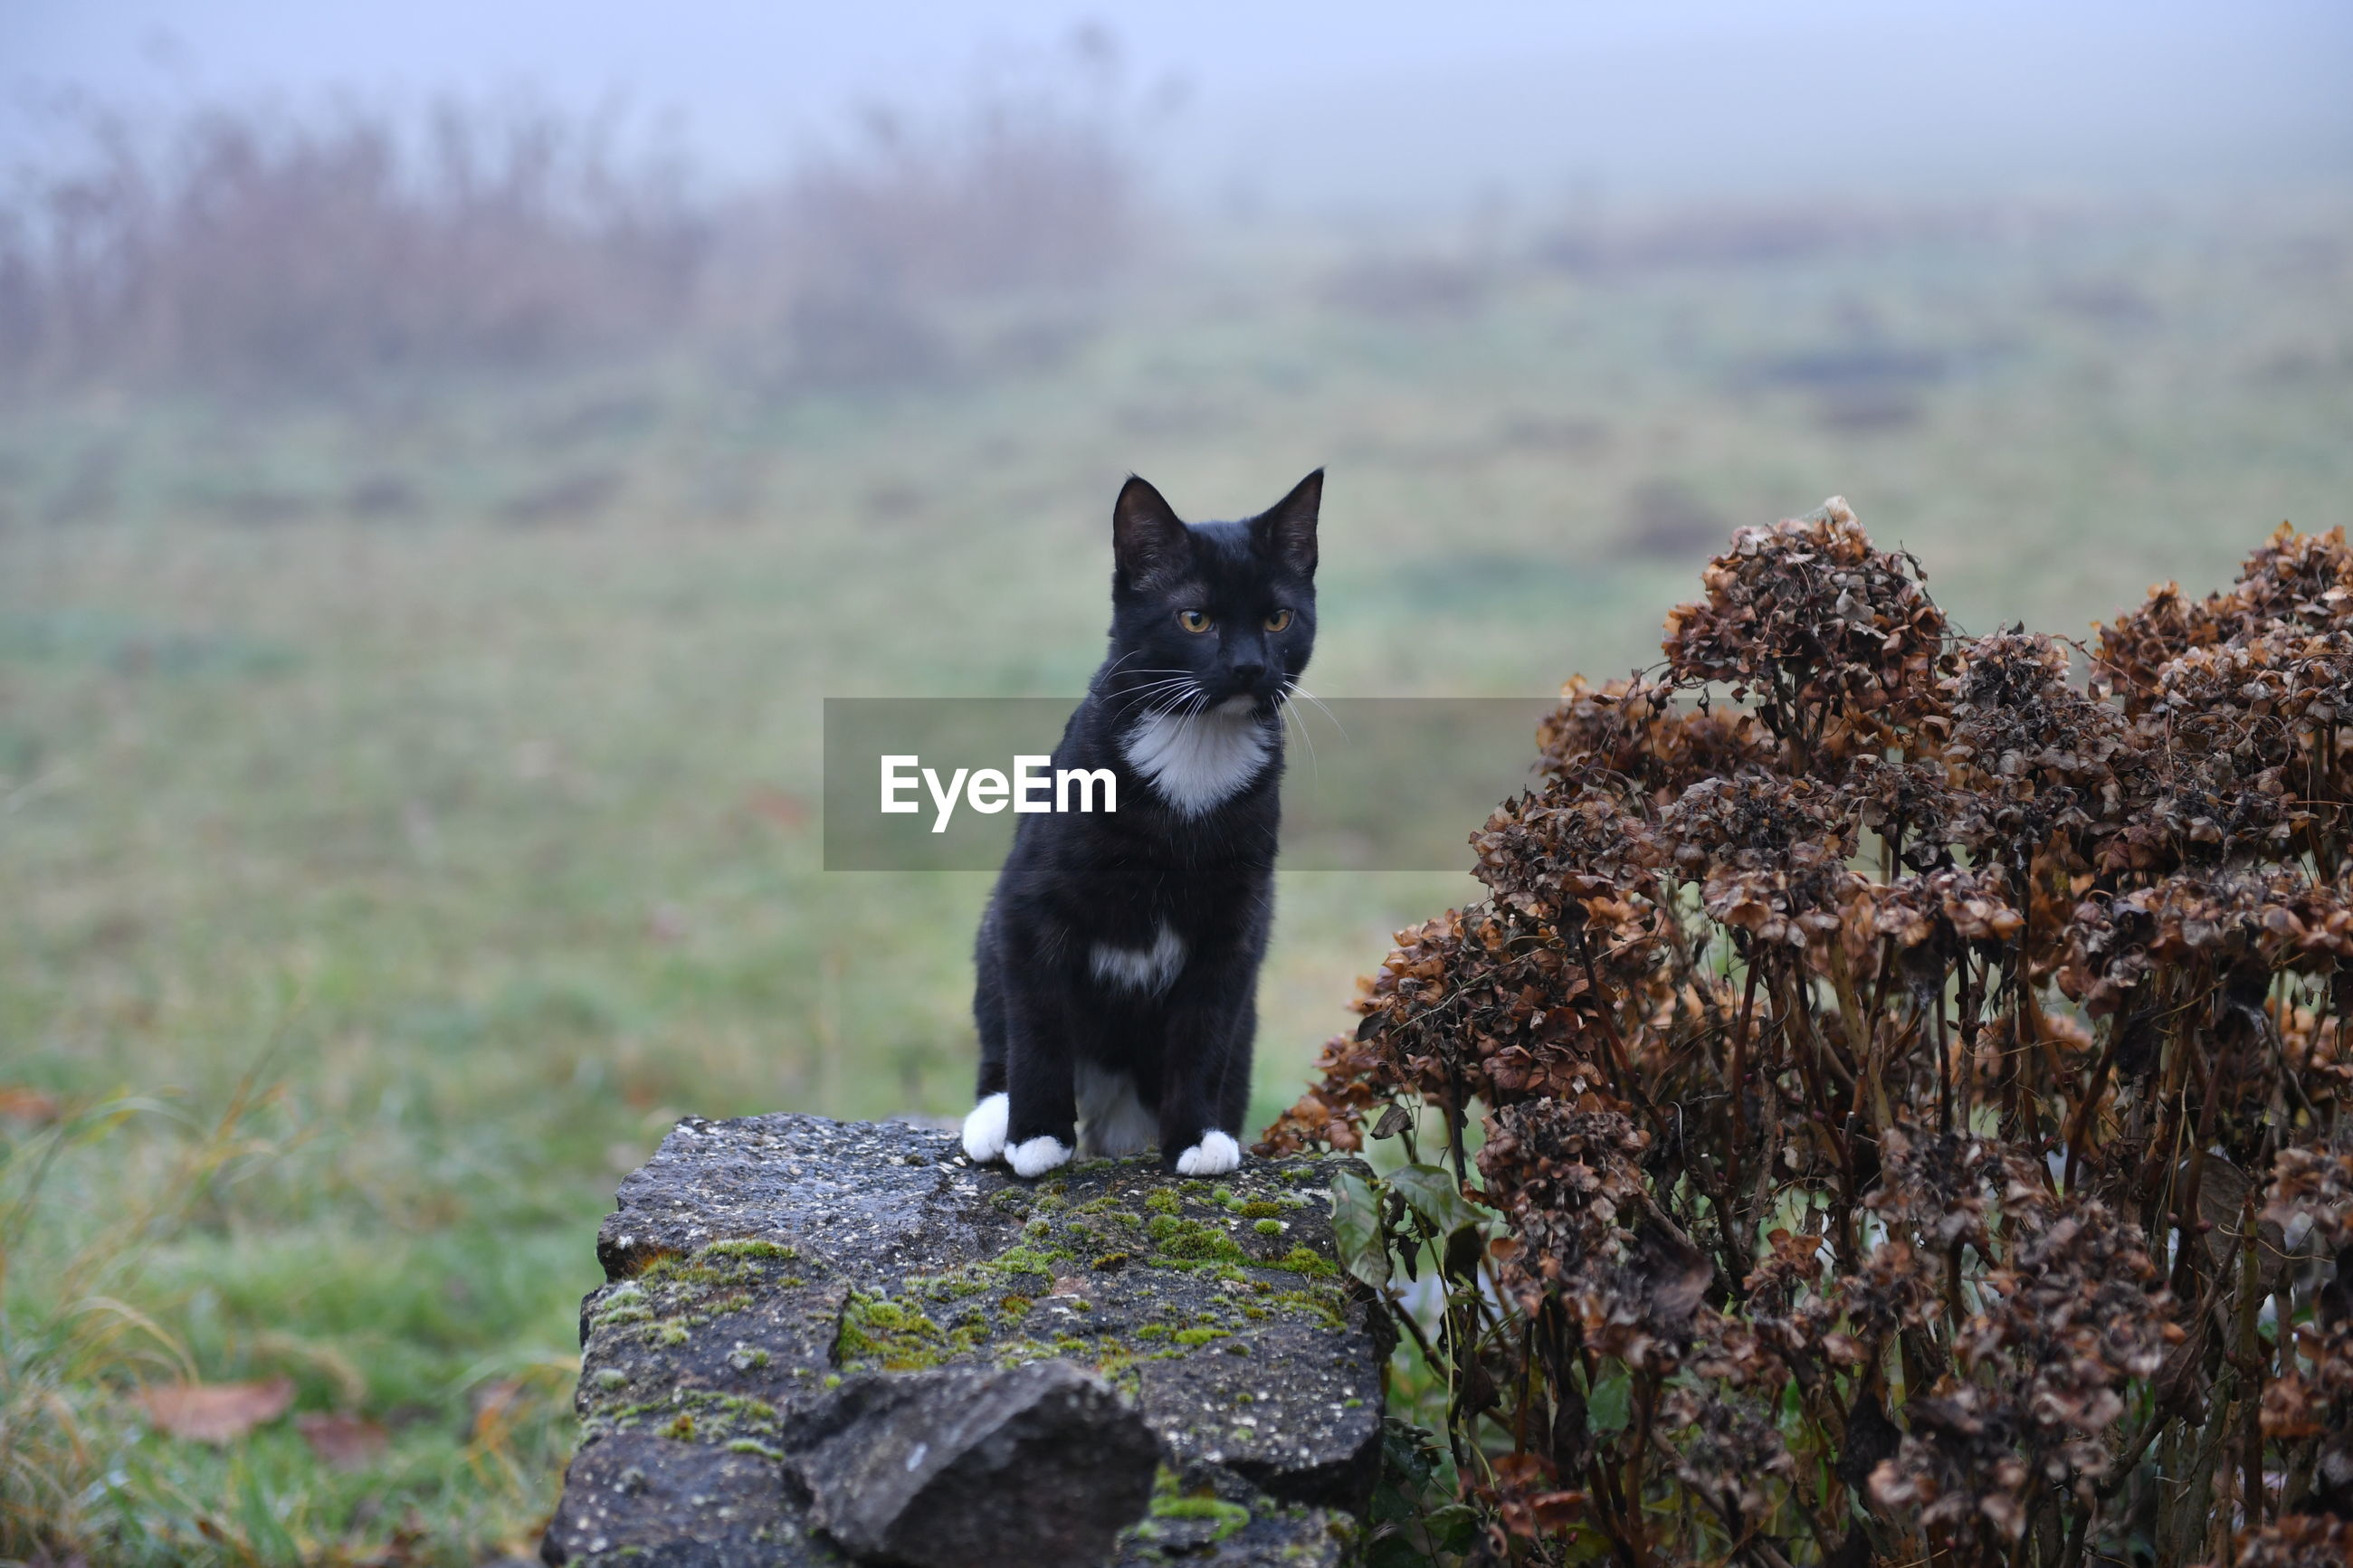 Cat sitting on rock during foggy weather